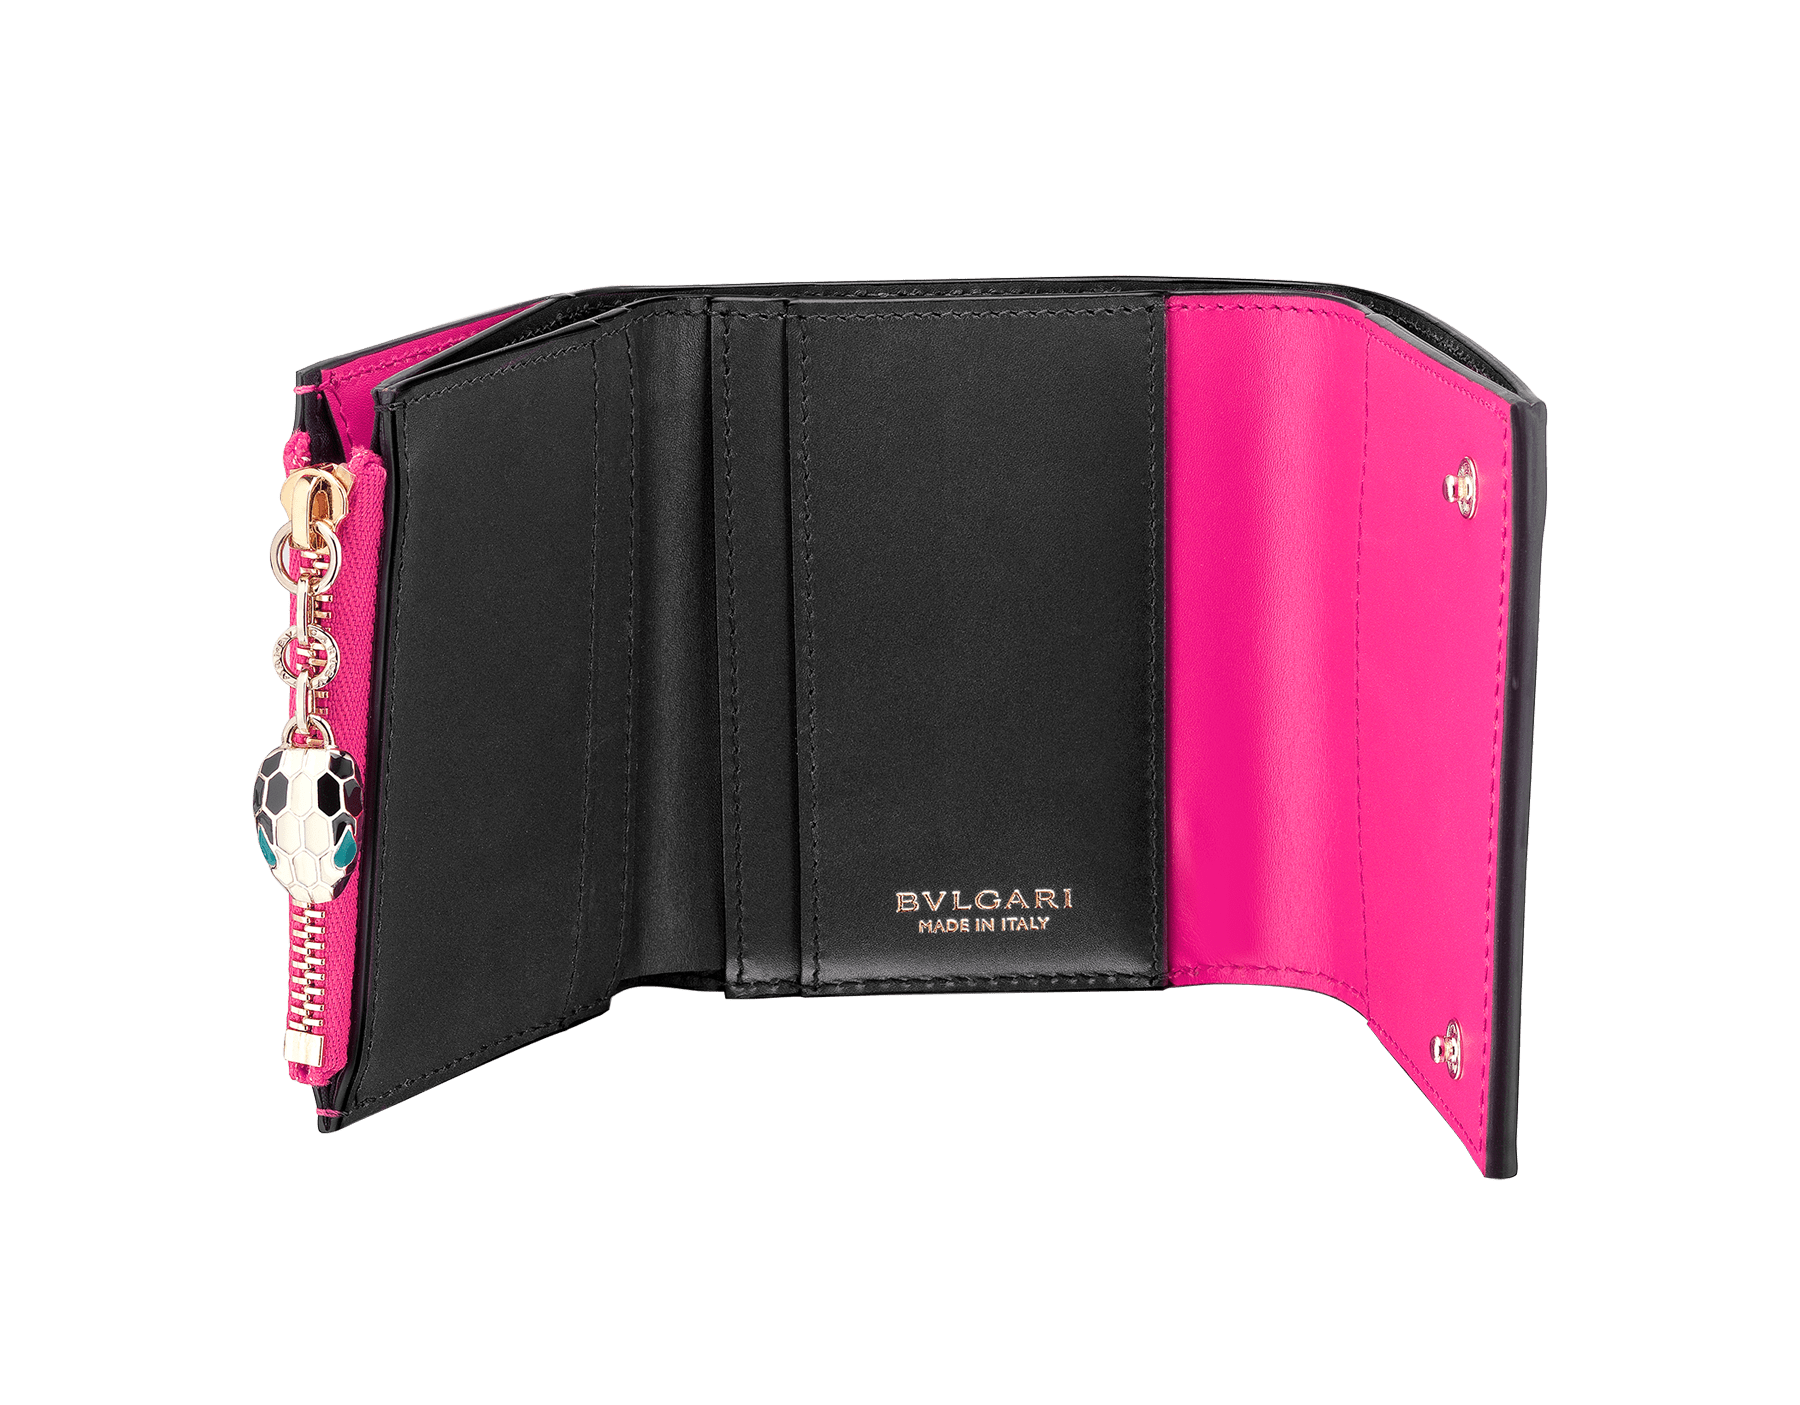 Serpenti Forever super compact wallet in roman garnet and pink spinel calf leather. Iconic snakehead zip puller in black and white enamel, with green malachite enamel eyes. SEA-SUPERCOMPACT-CLa image 2